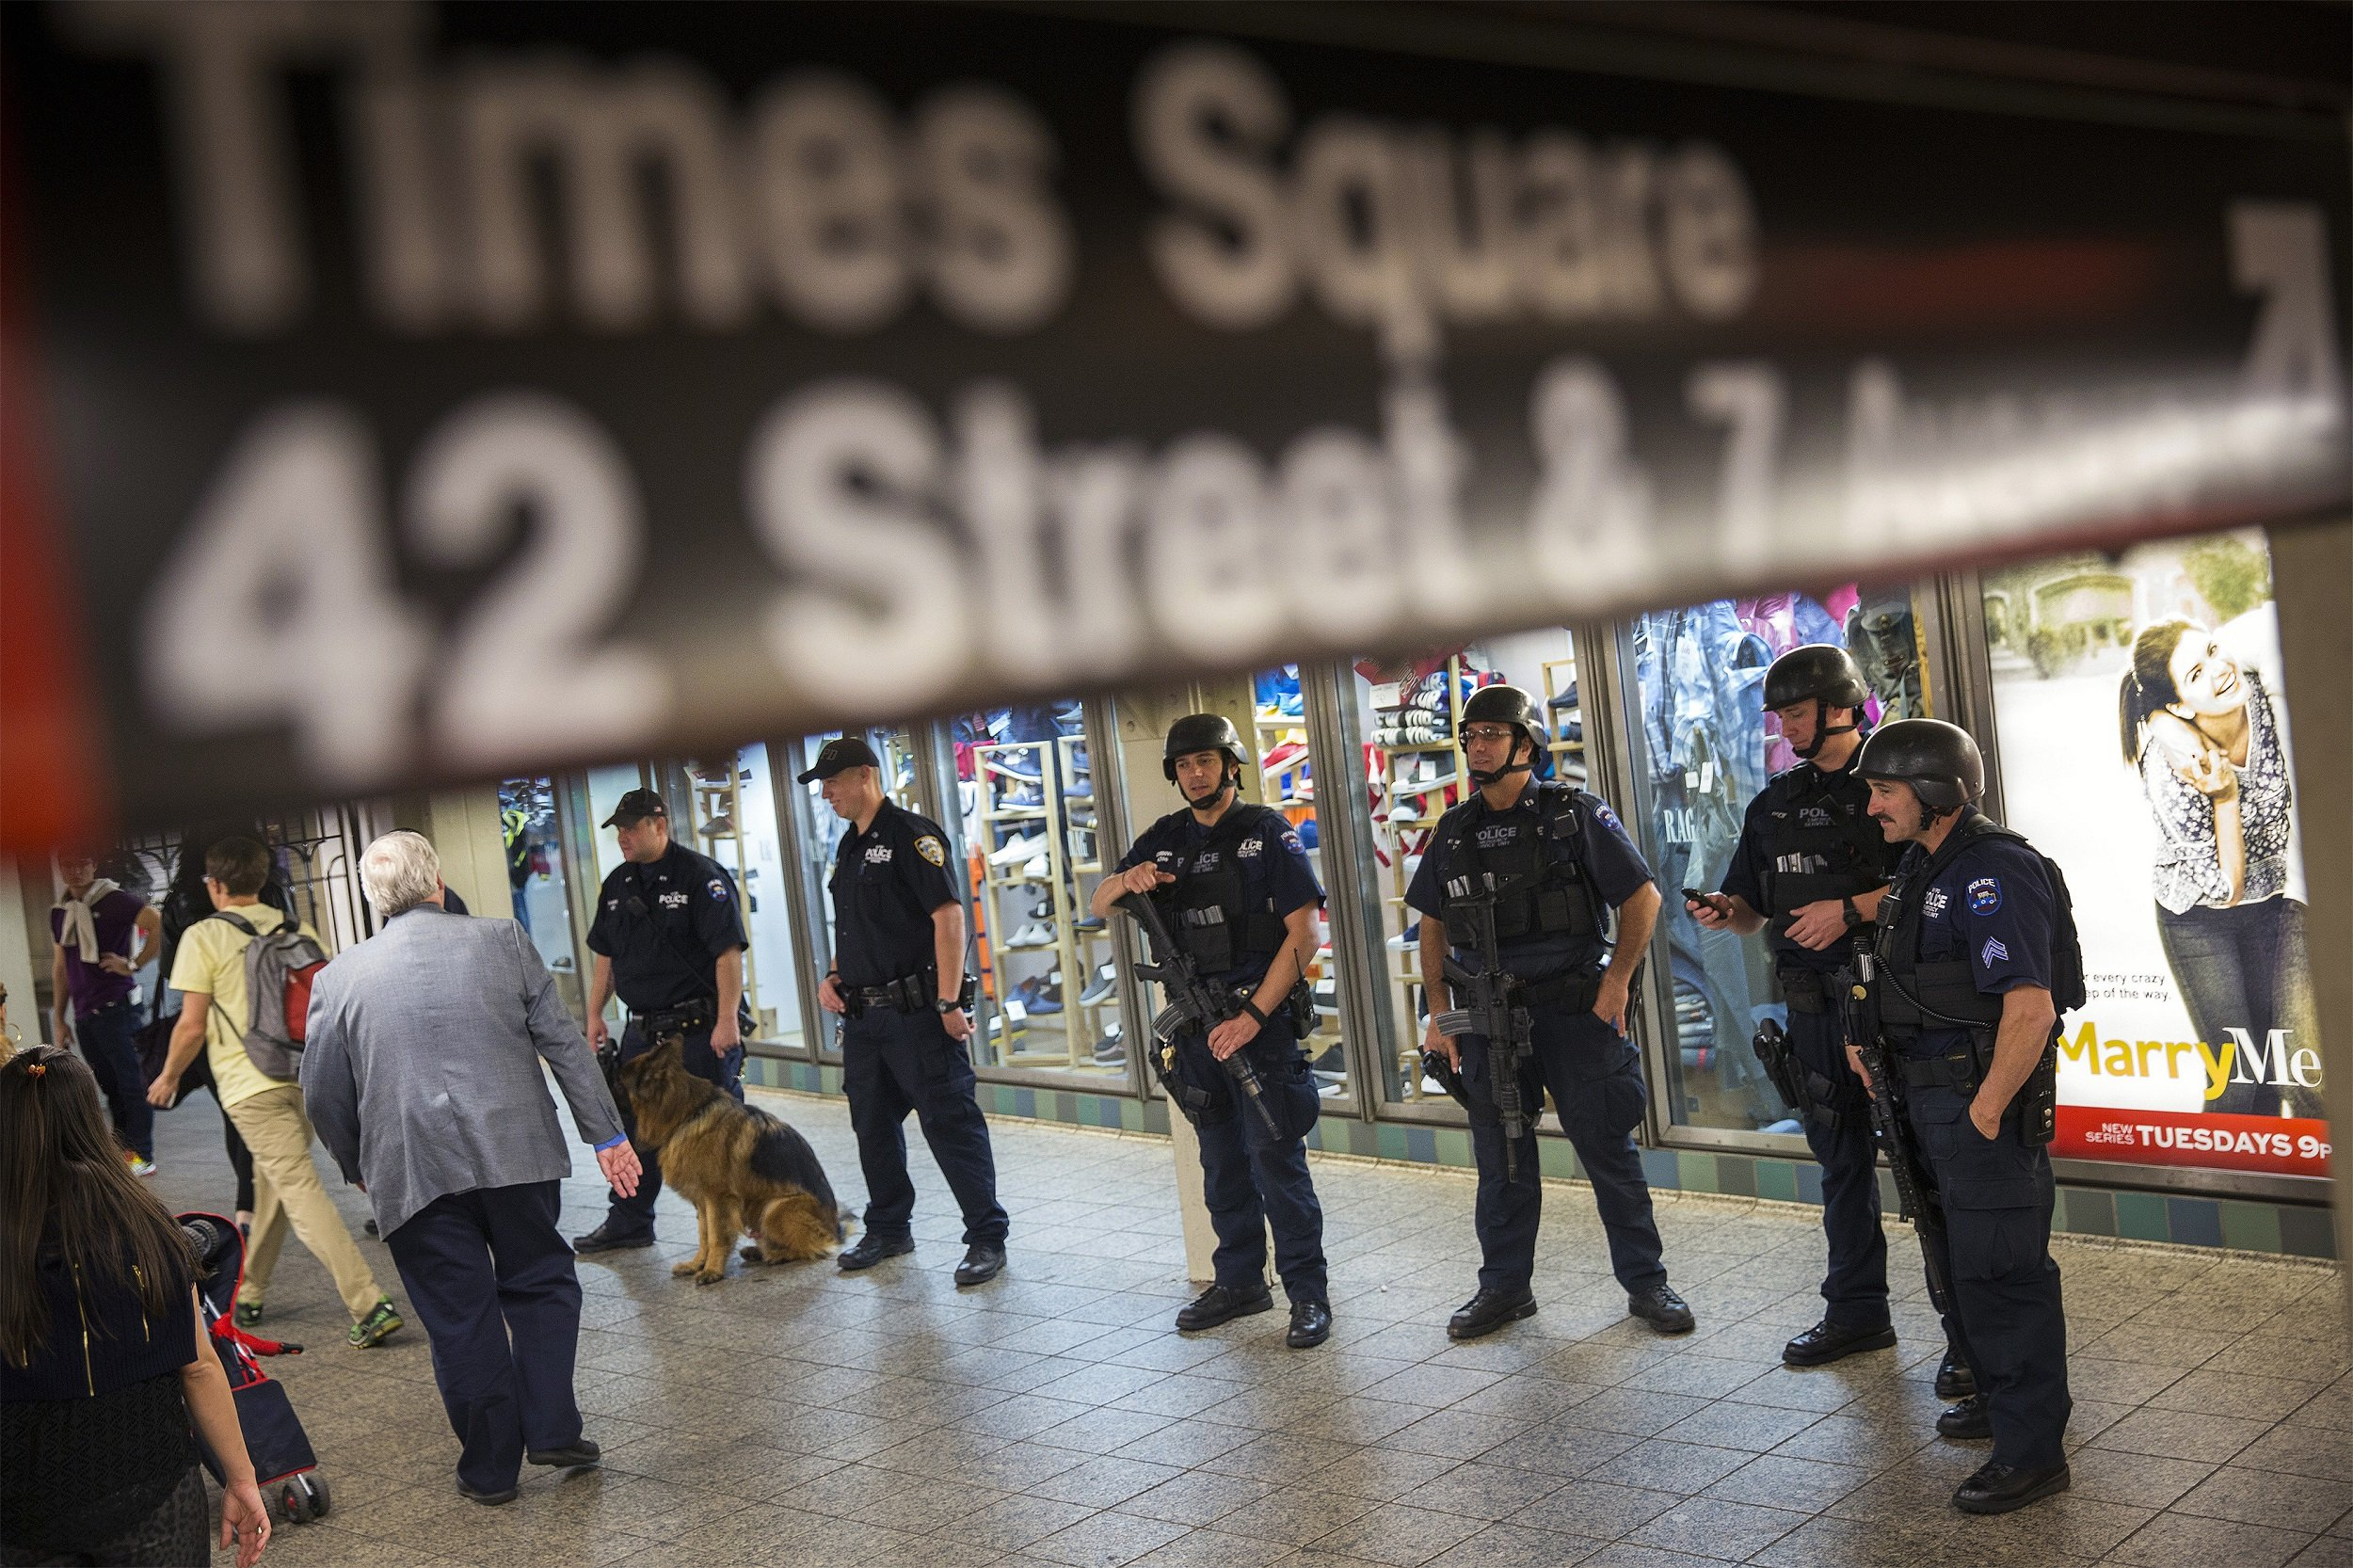 No Islamic State Plot Against Subways, Officials Say